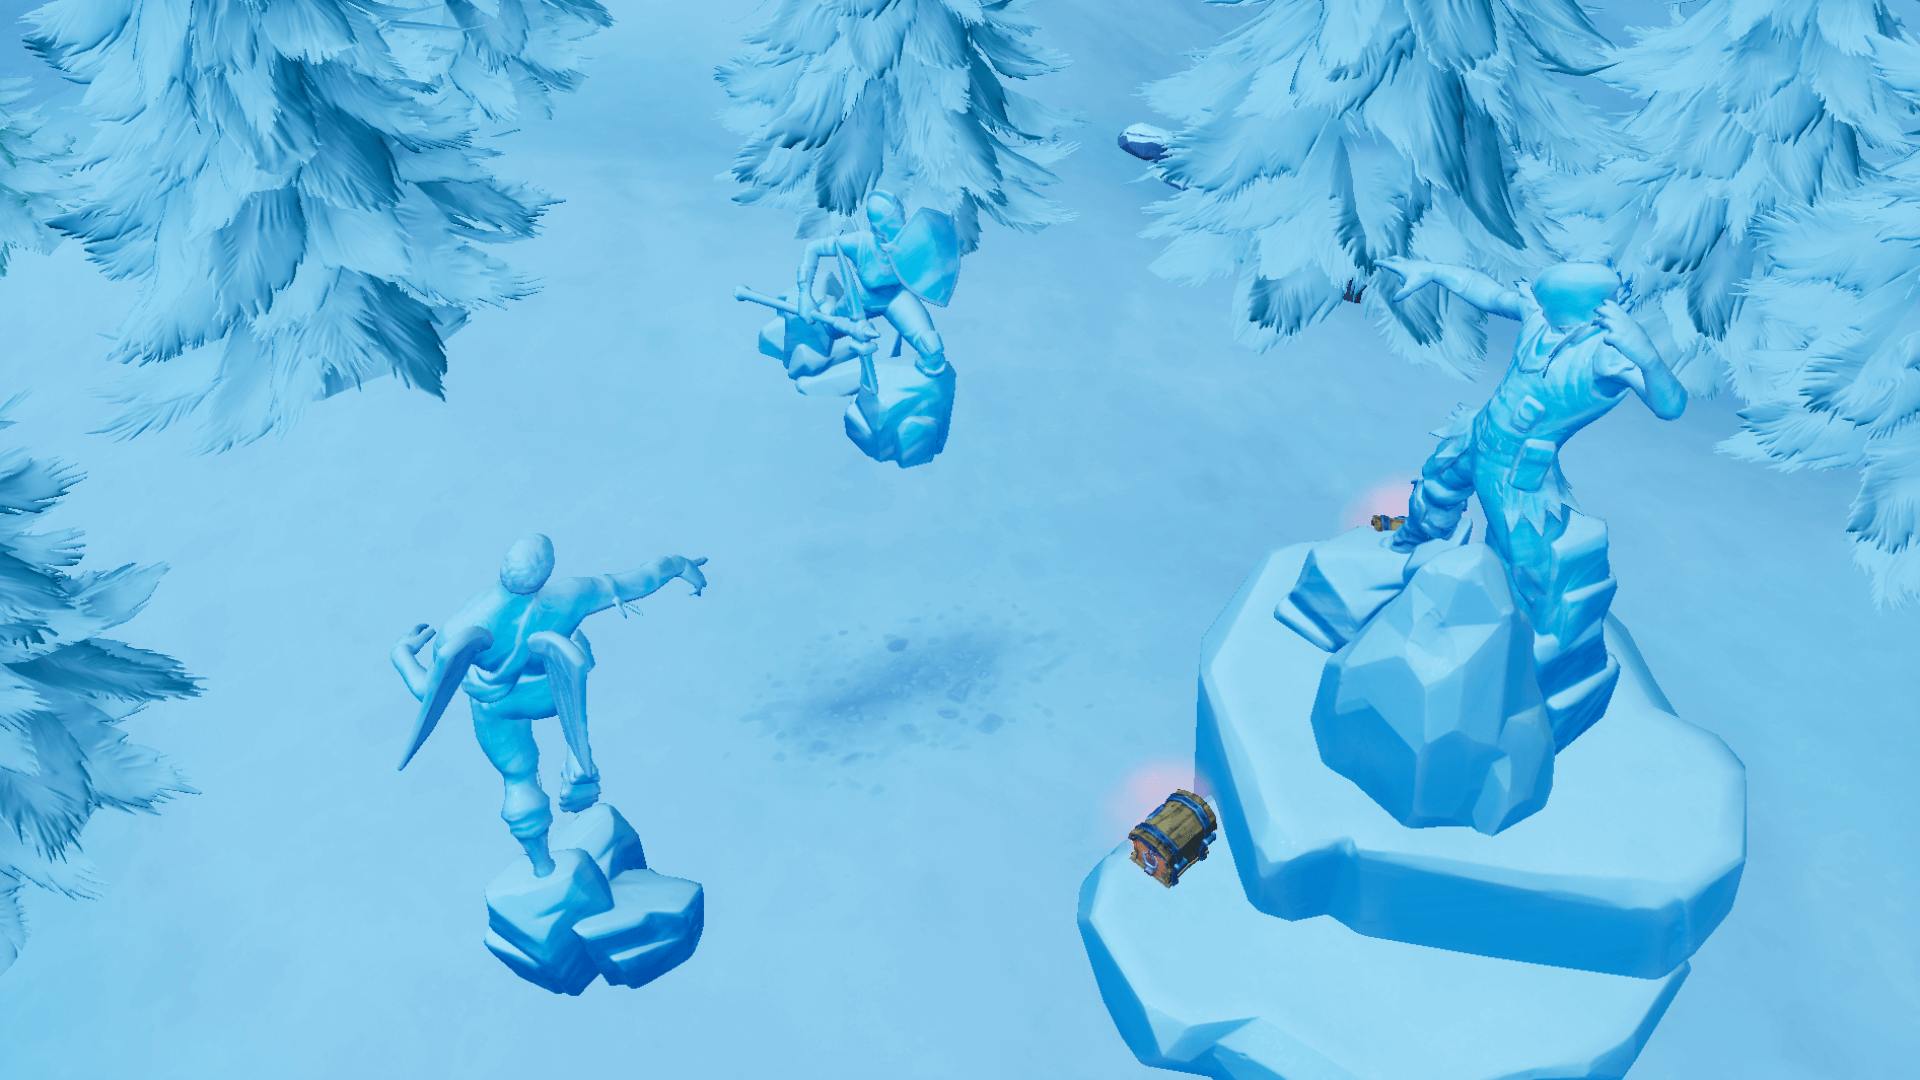 Fortnite: Three Ice Sculptures, Three Dinosaurs, and Four